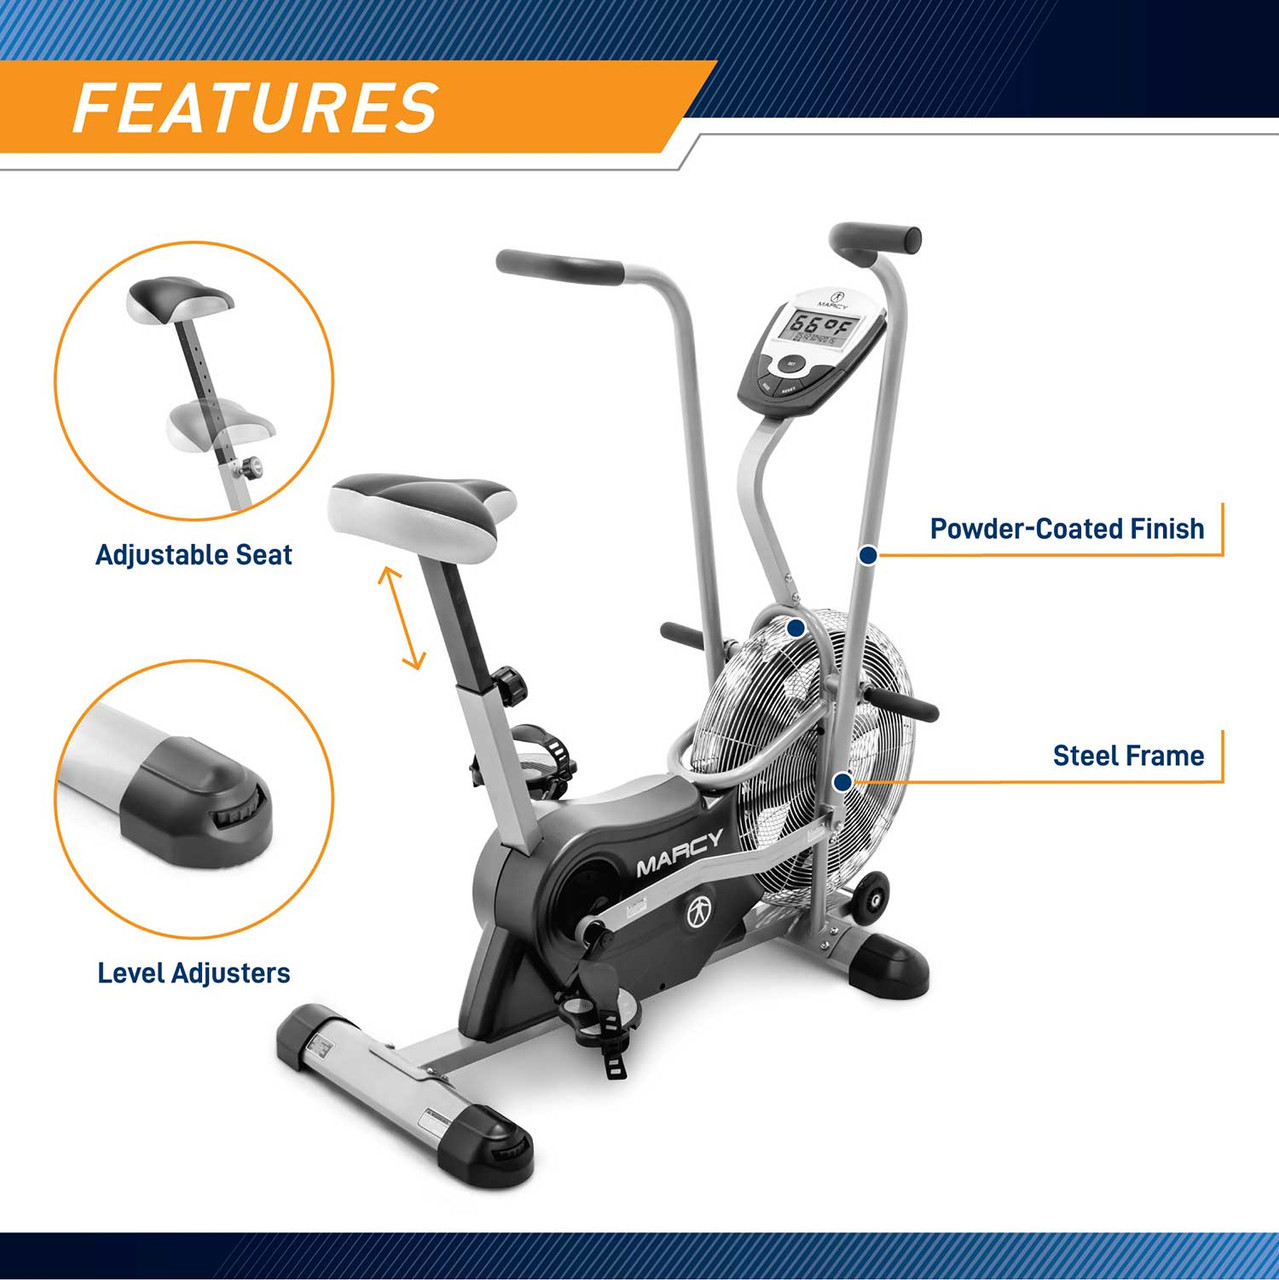 The Marcy AIR-1 Deluxe Fan Bike has adjustable levelers to avoid any imbalances during your workout